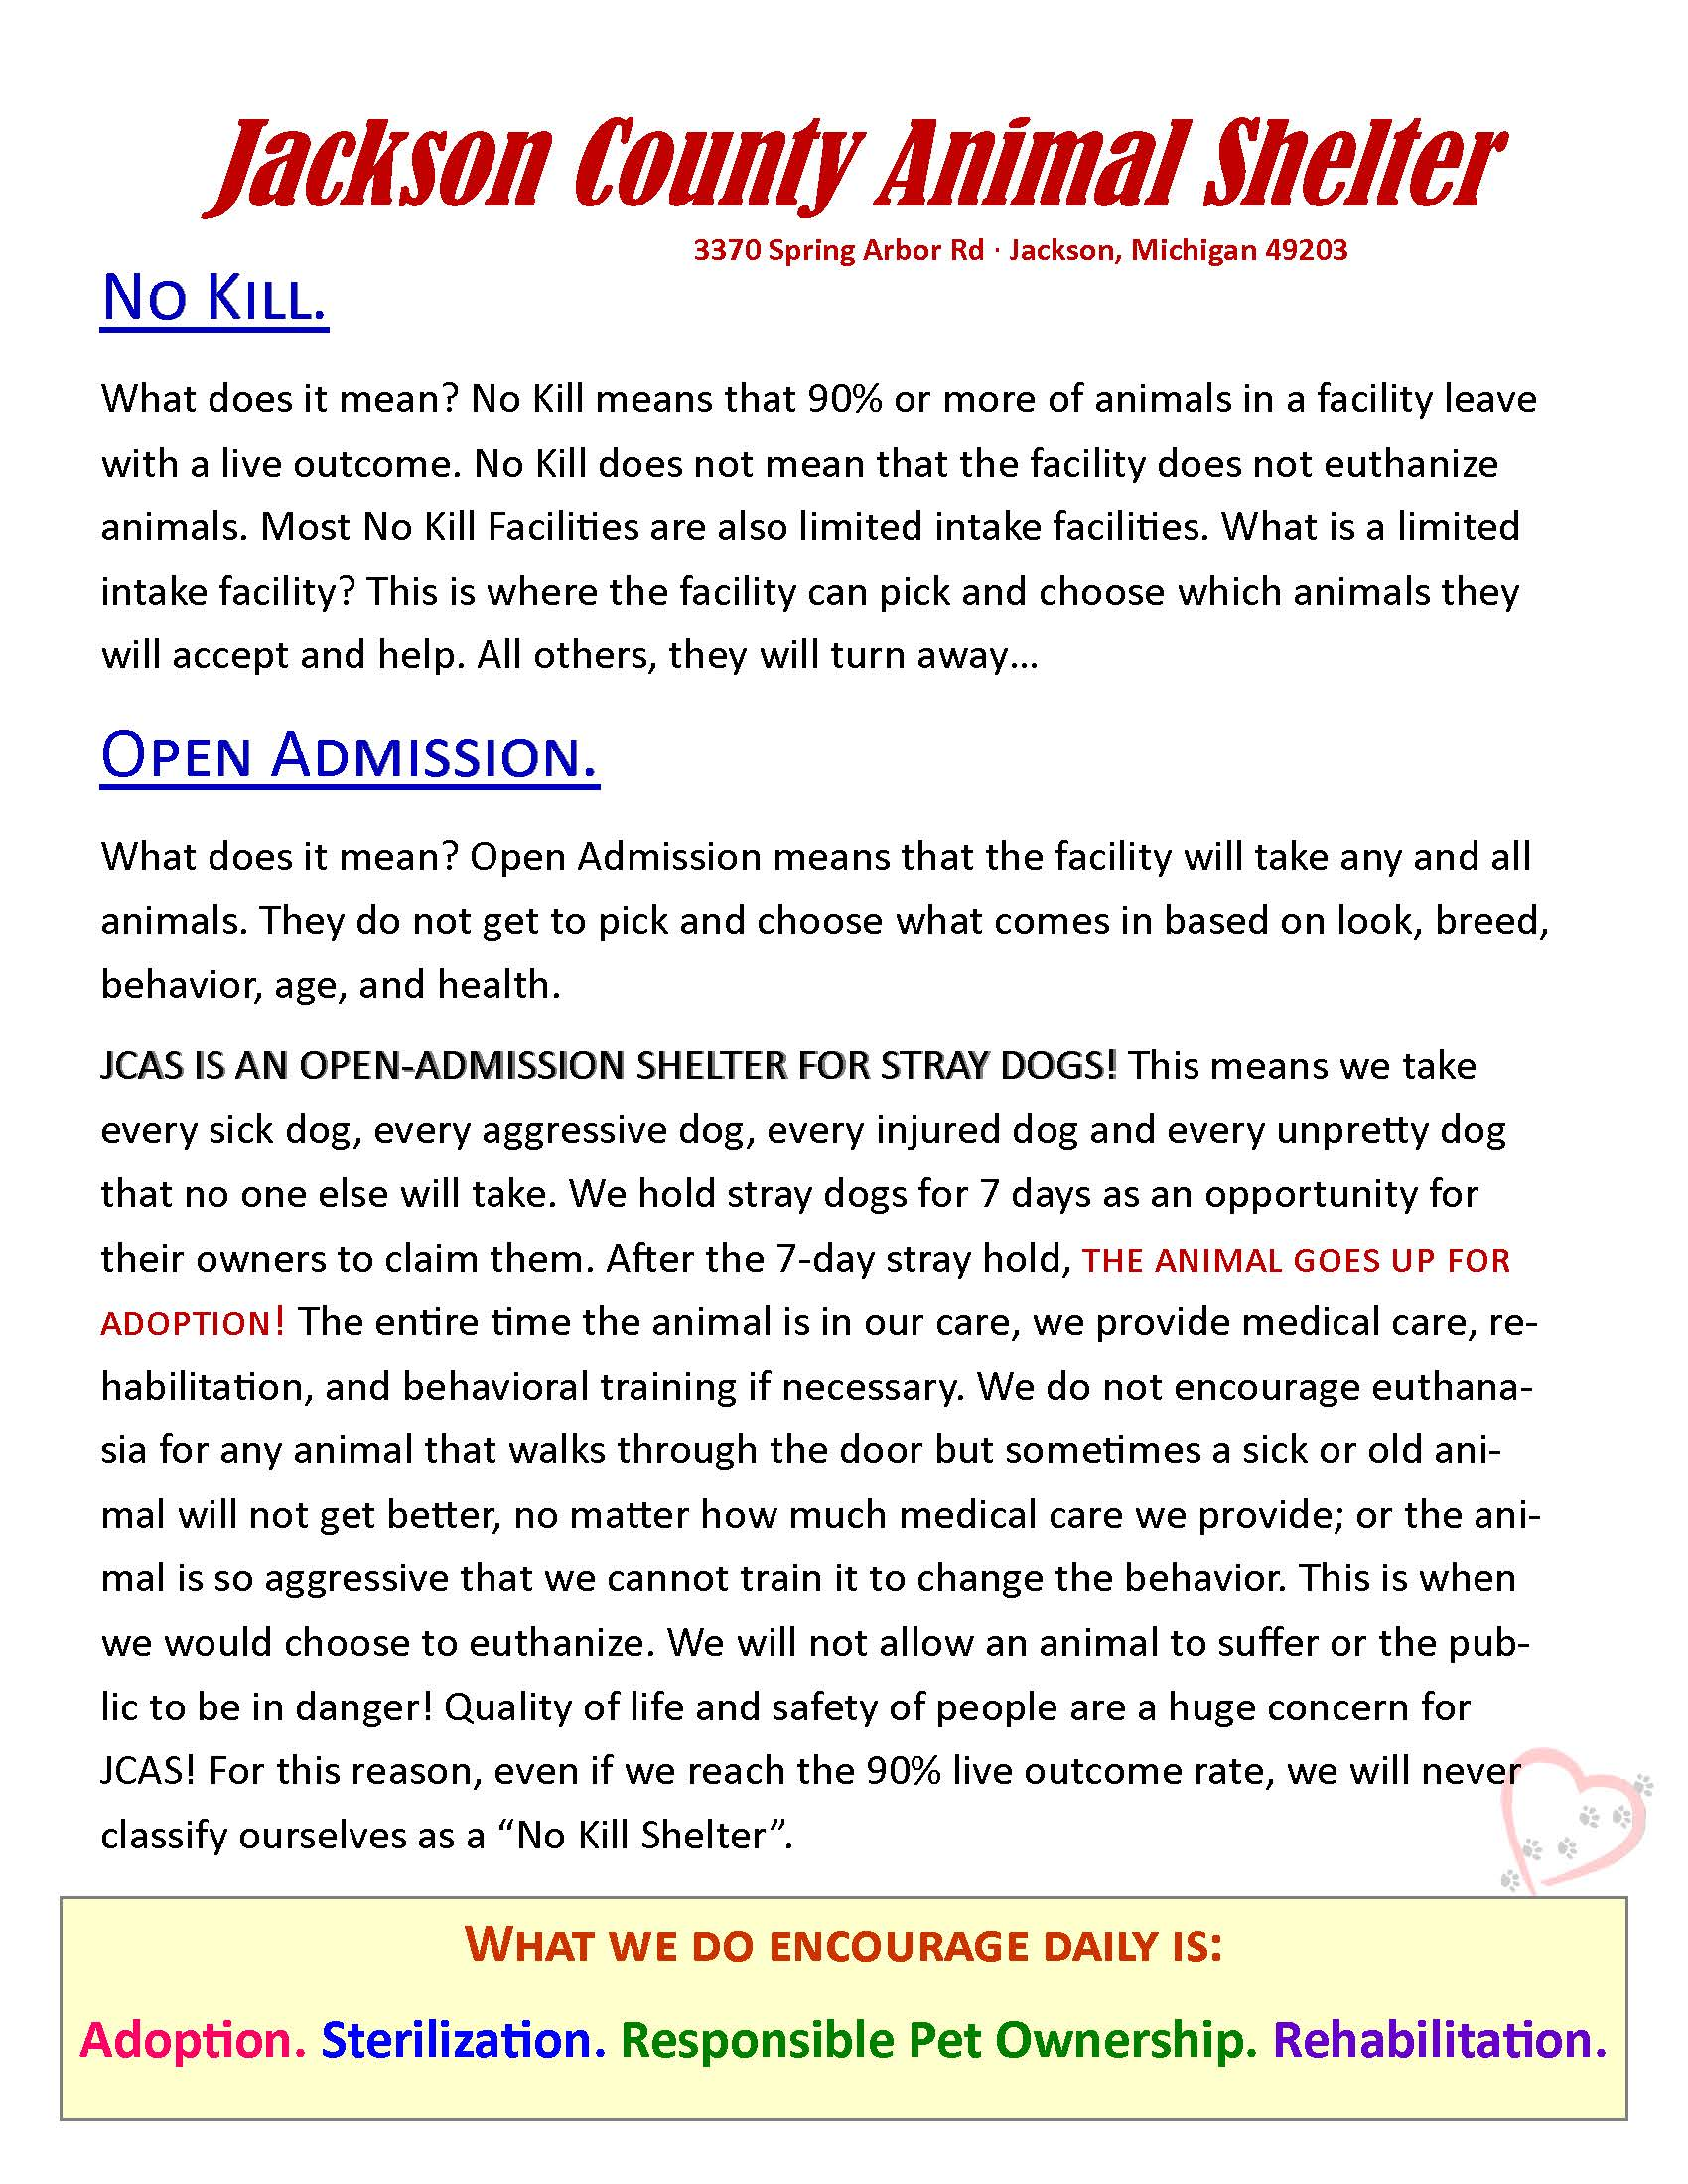 Animal Shelter No Kill vs Open Admission